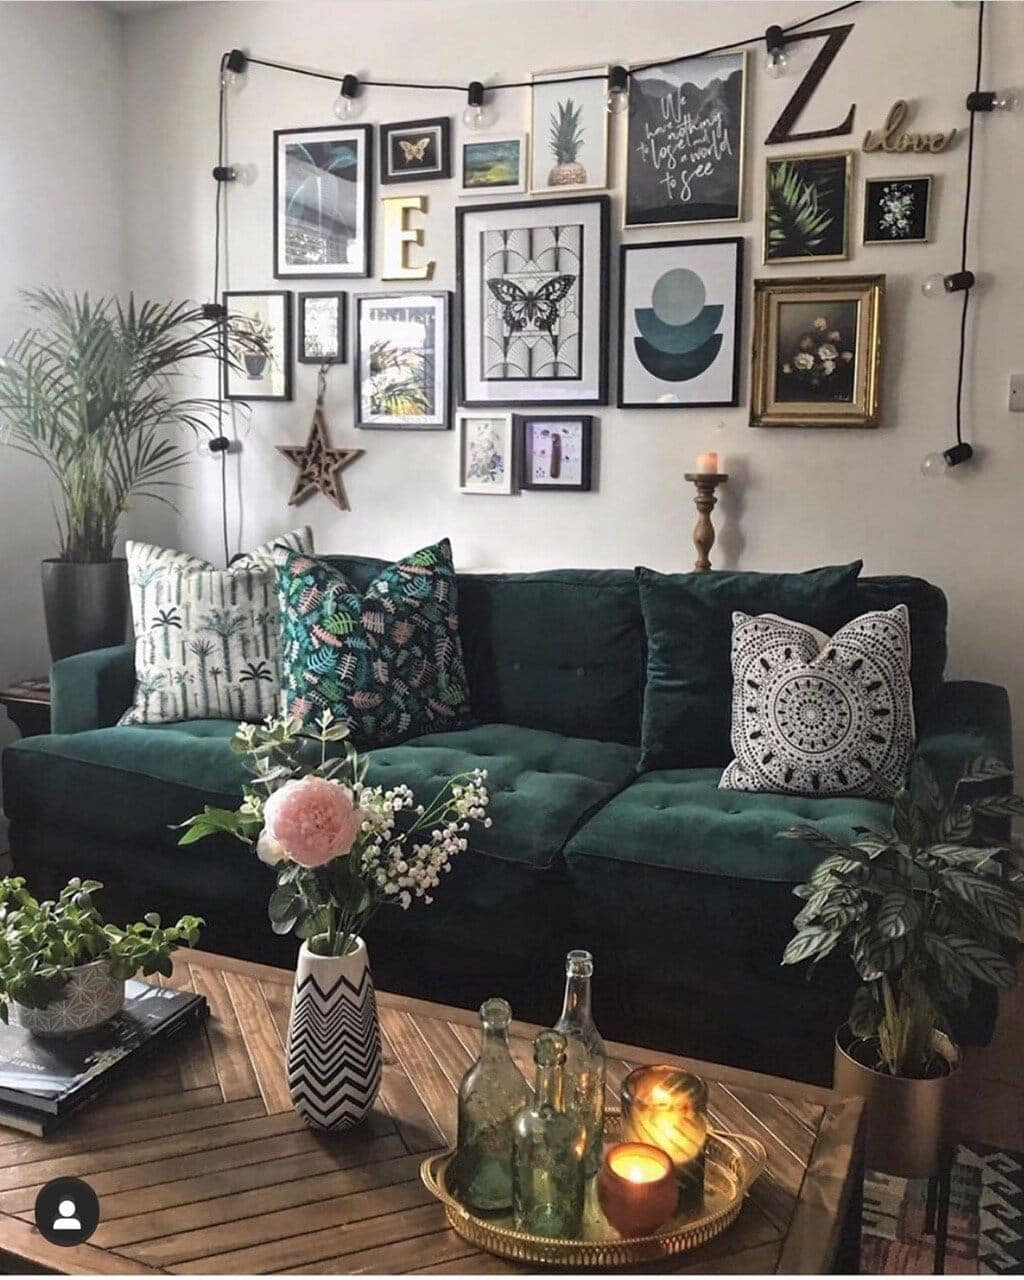 This is the gallery wall that now sits opposite my green feature wall. I kept to the green and natural elements of the room with my prints